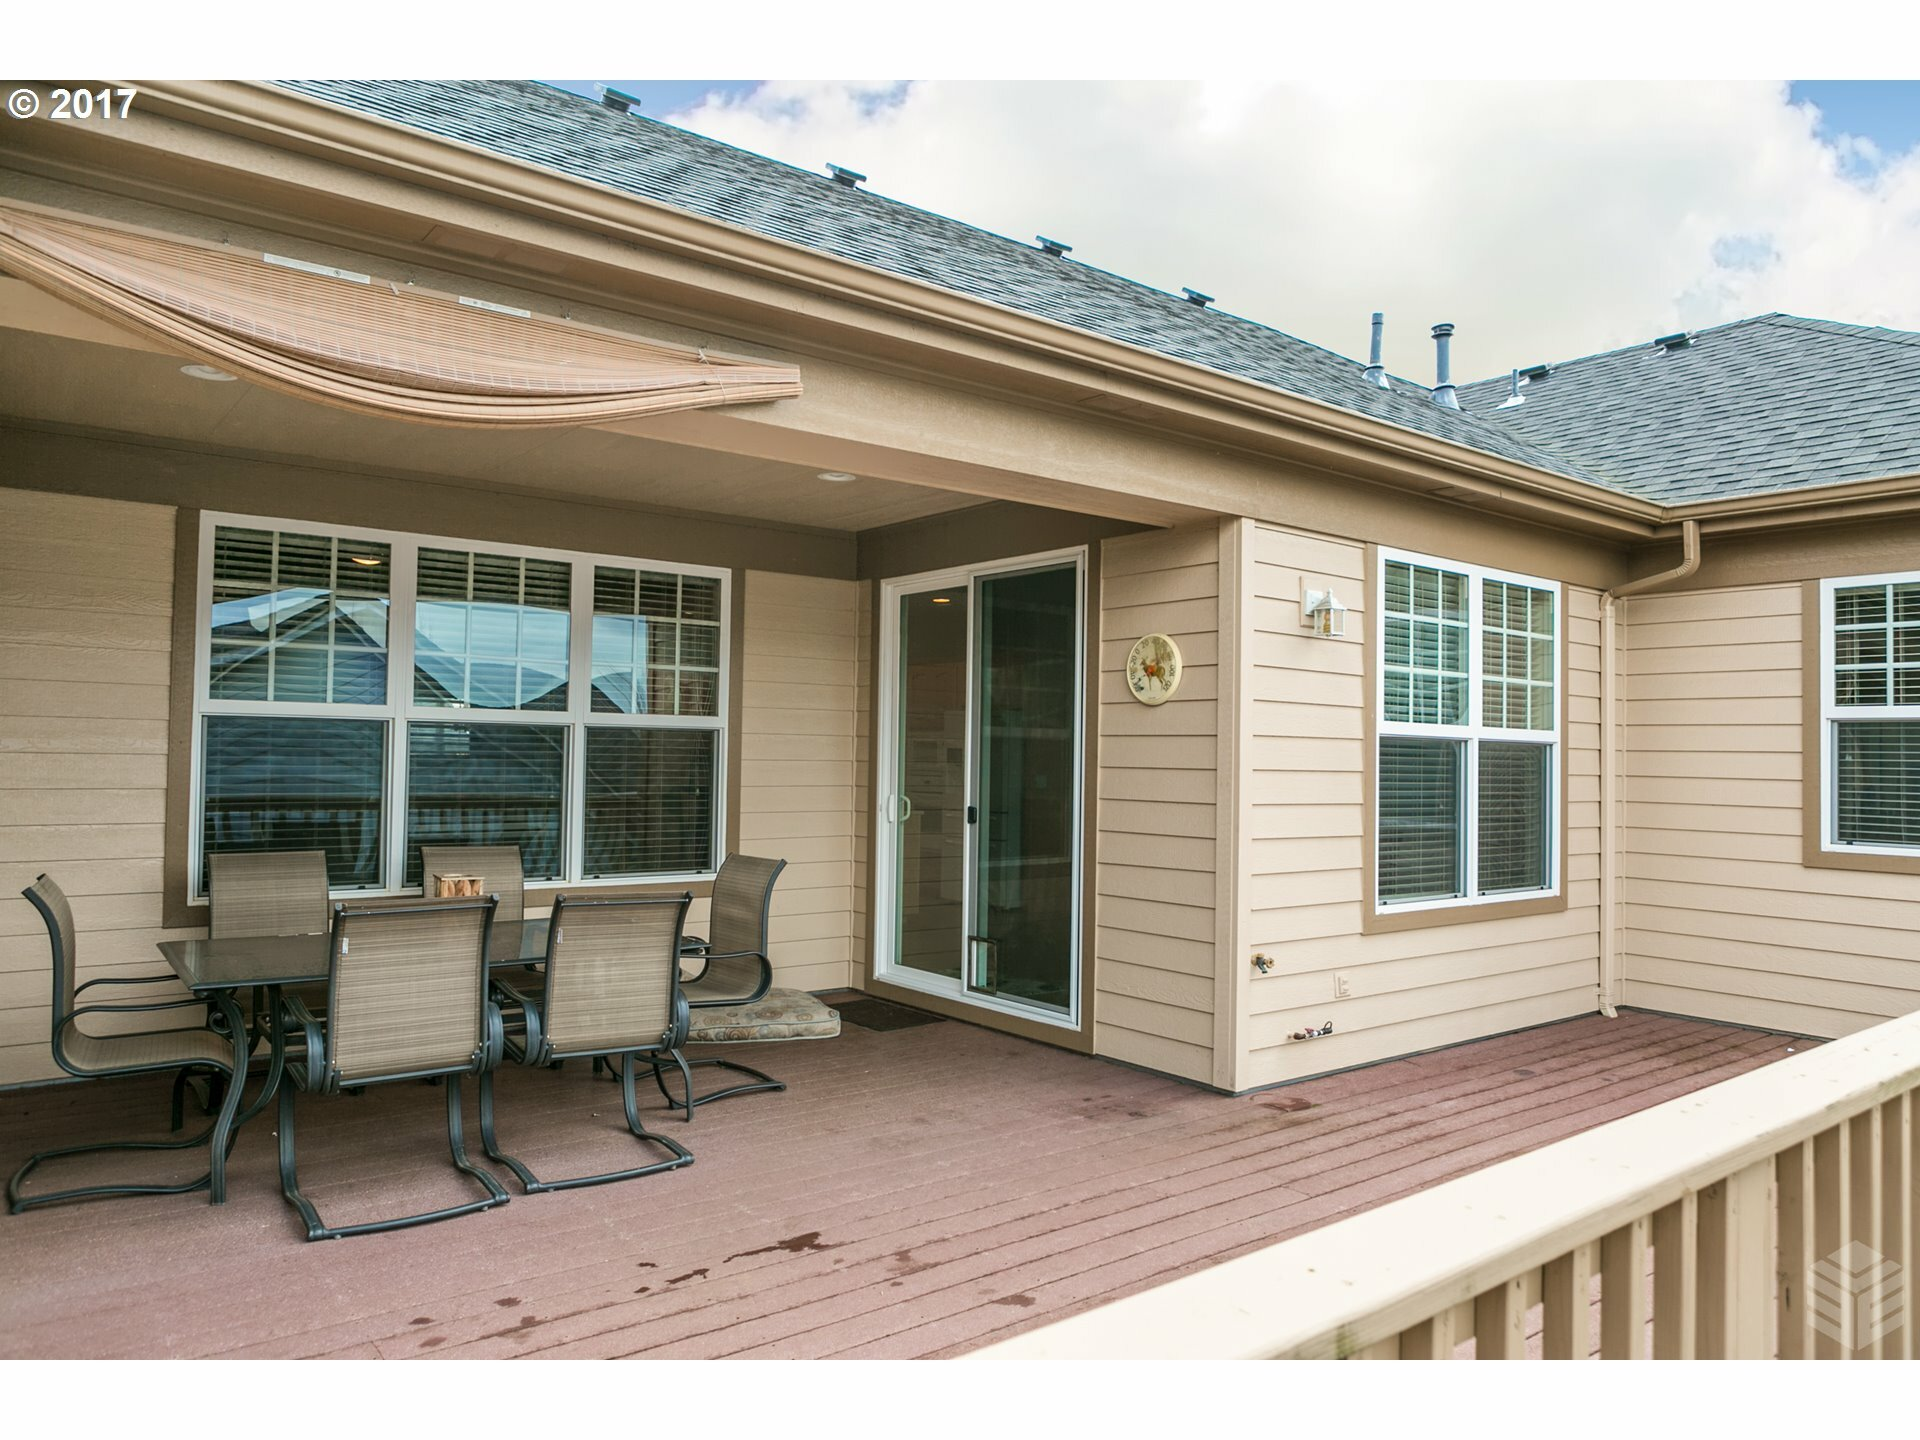 2298 37th St, Springfield, OR - USA (photo 4)